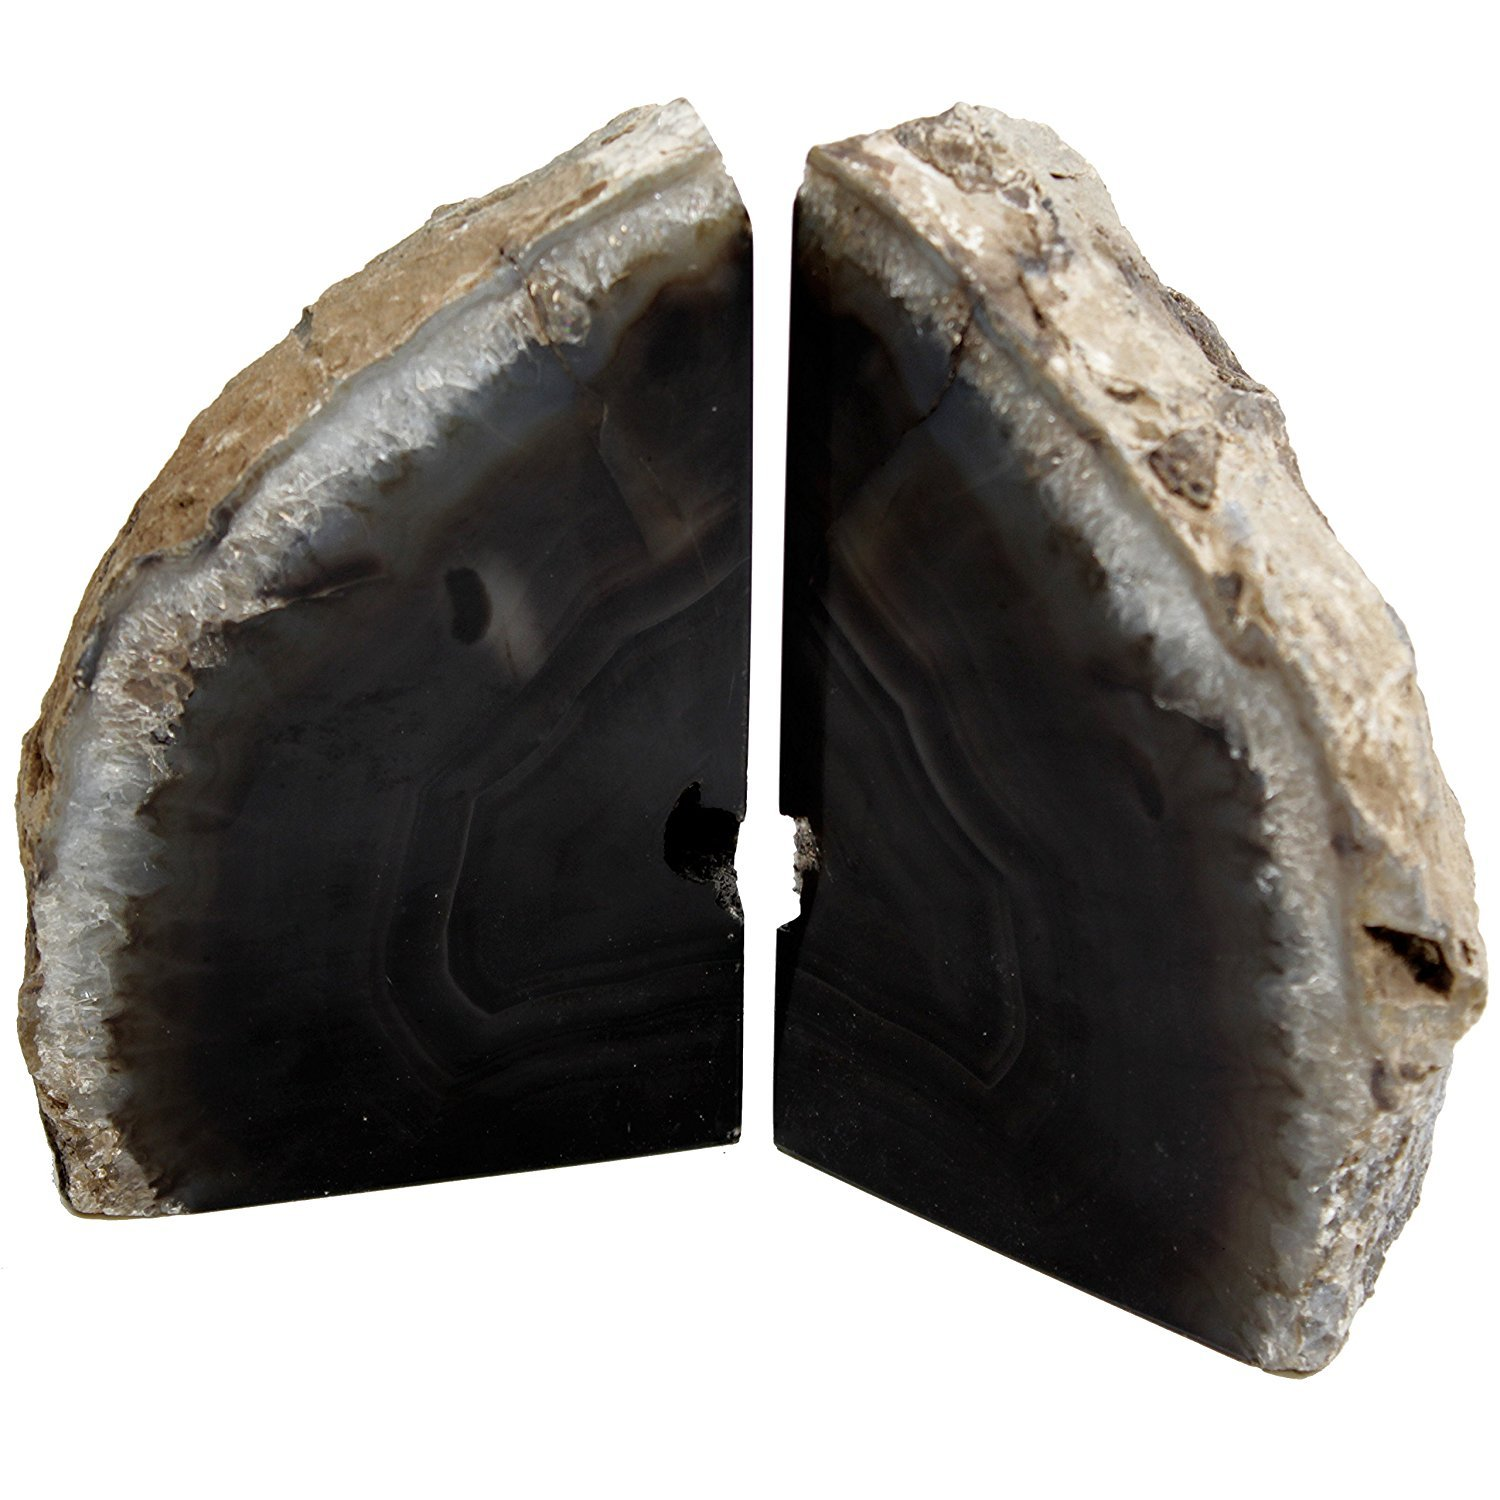 DIA Sold As Shown: Black Agate Bookends Mid Size (B1) by LE